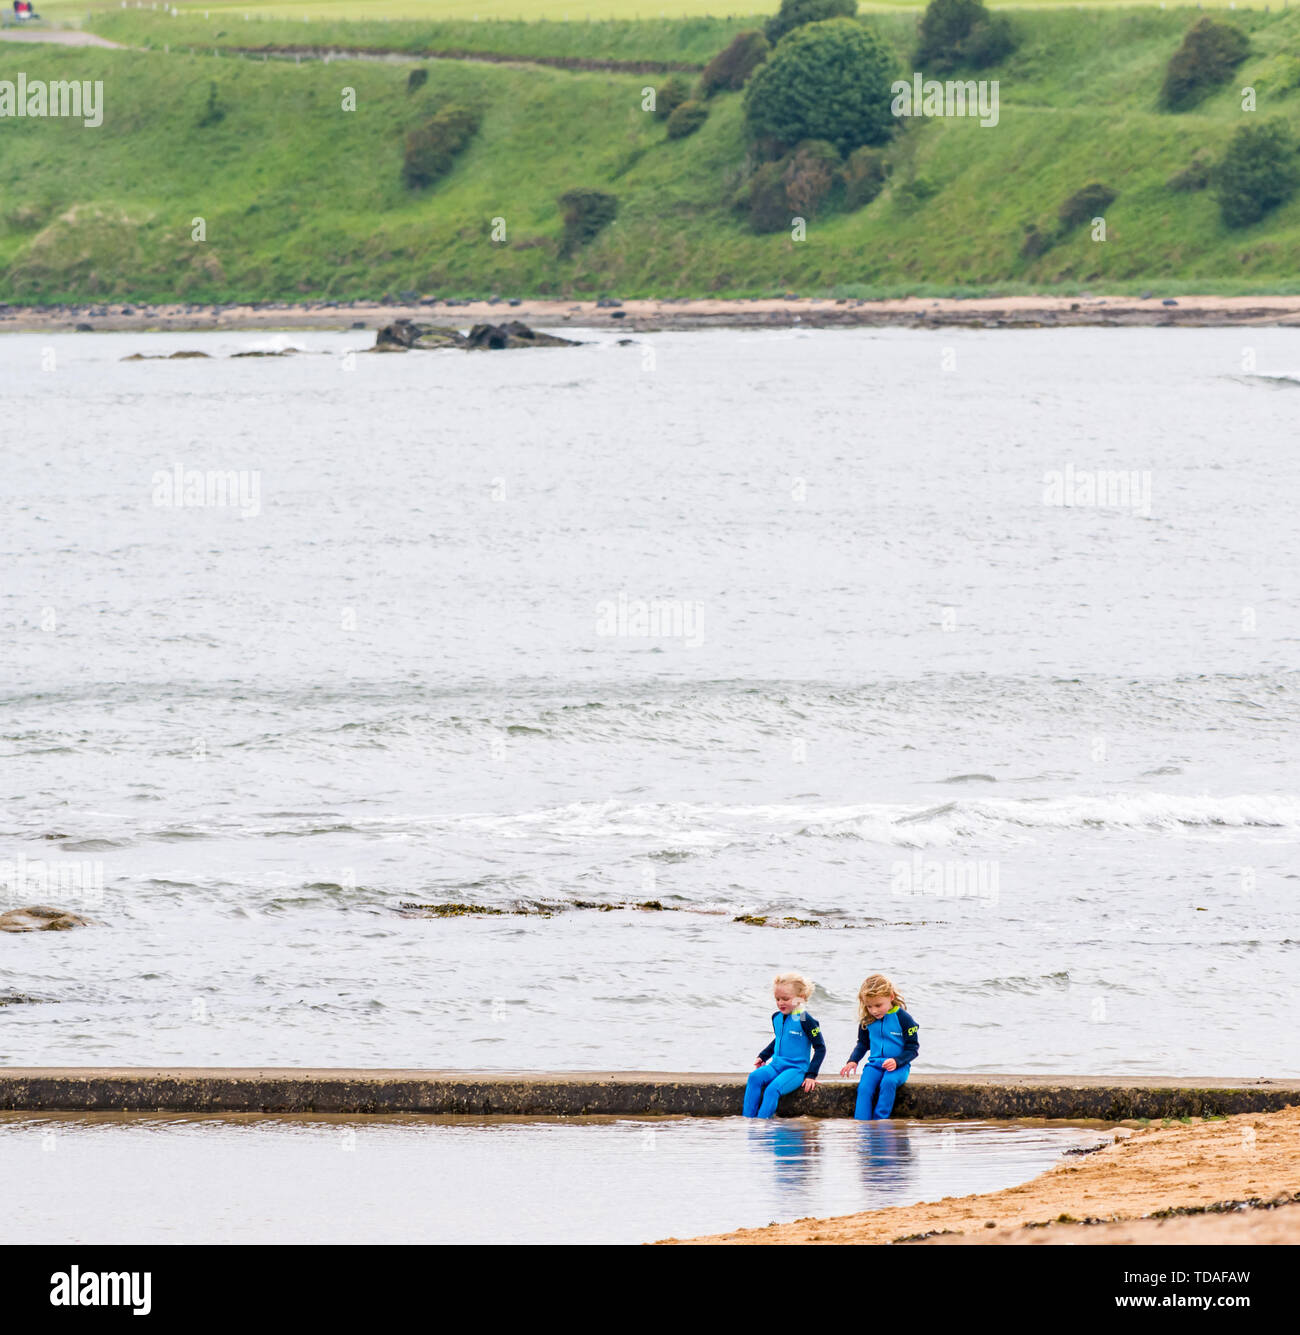 North Berwick, East Lothian, Scotland, United Kingdom, 14th June 2019. UK Weather: After East Lothian suffered heavy rain the last few days, the weather has brightened, and people enjoy the outdoor pursuits in the seaside town. Two young girls enjoy the tidal bathing pool at Milsey Bay. Credit: Sally Anderson/Alamy Live News - Stock Image